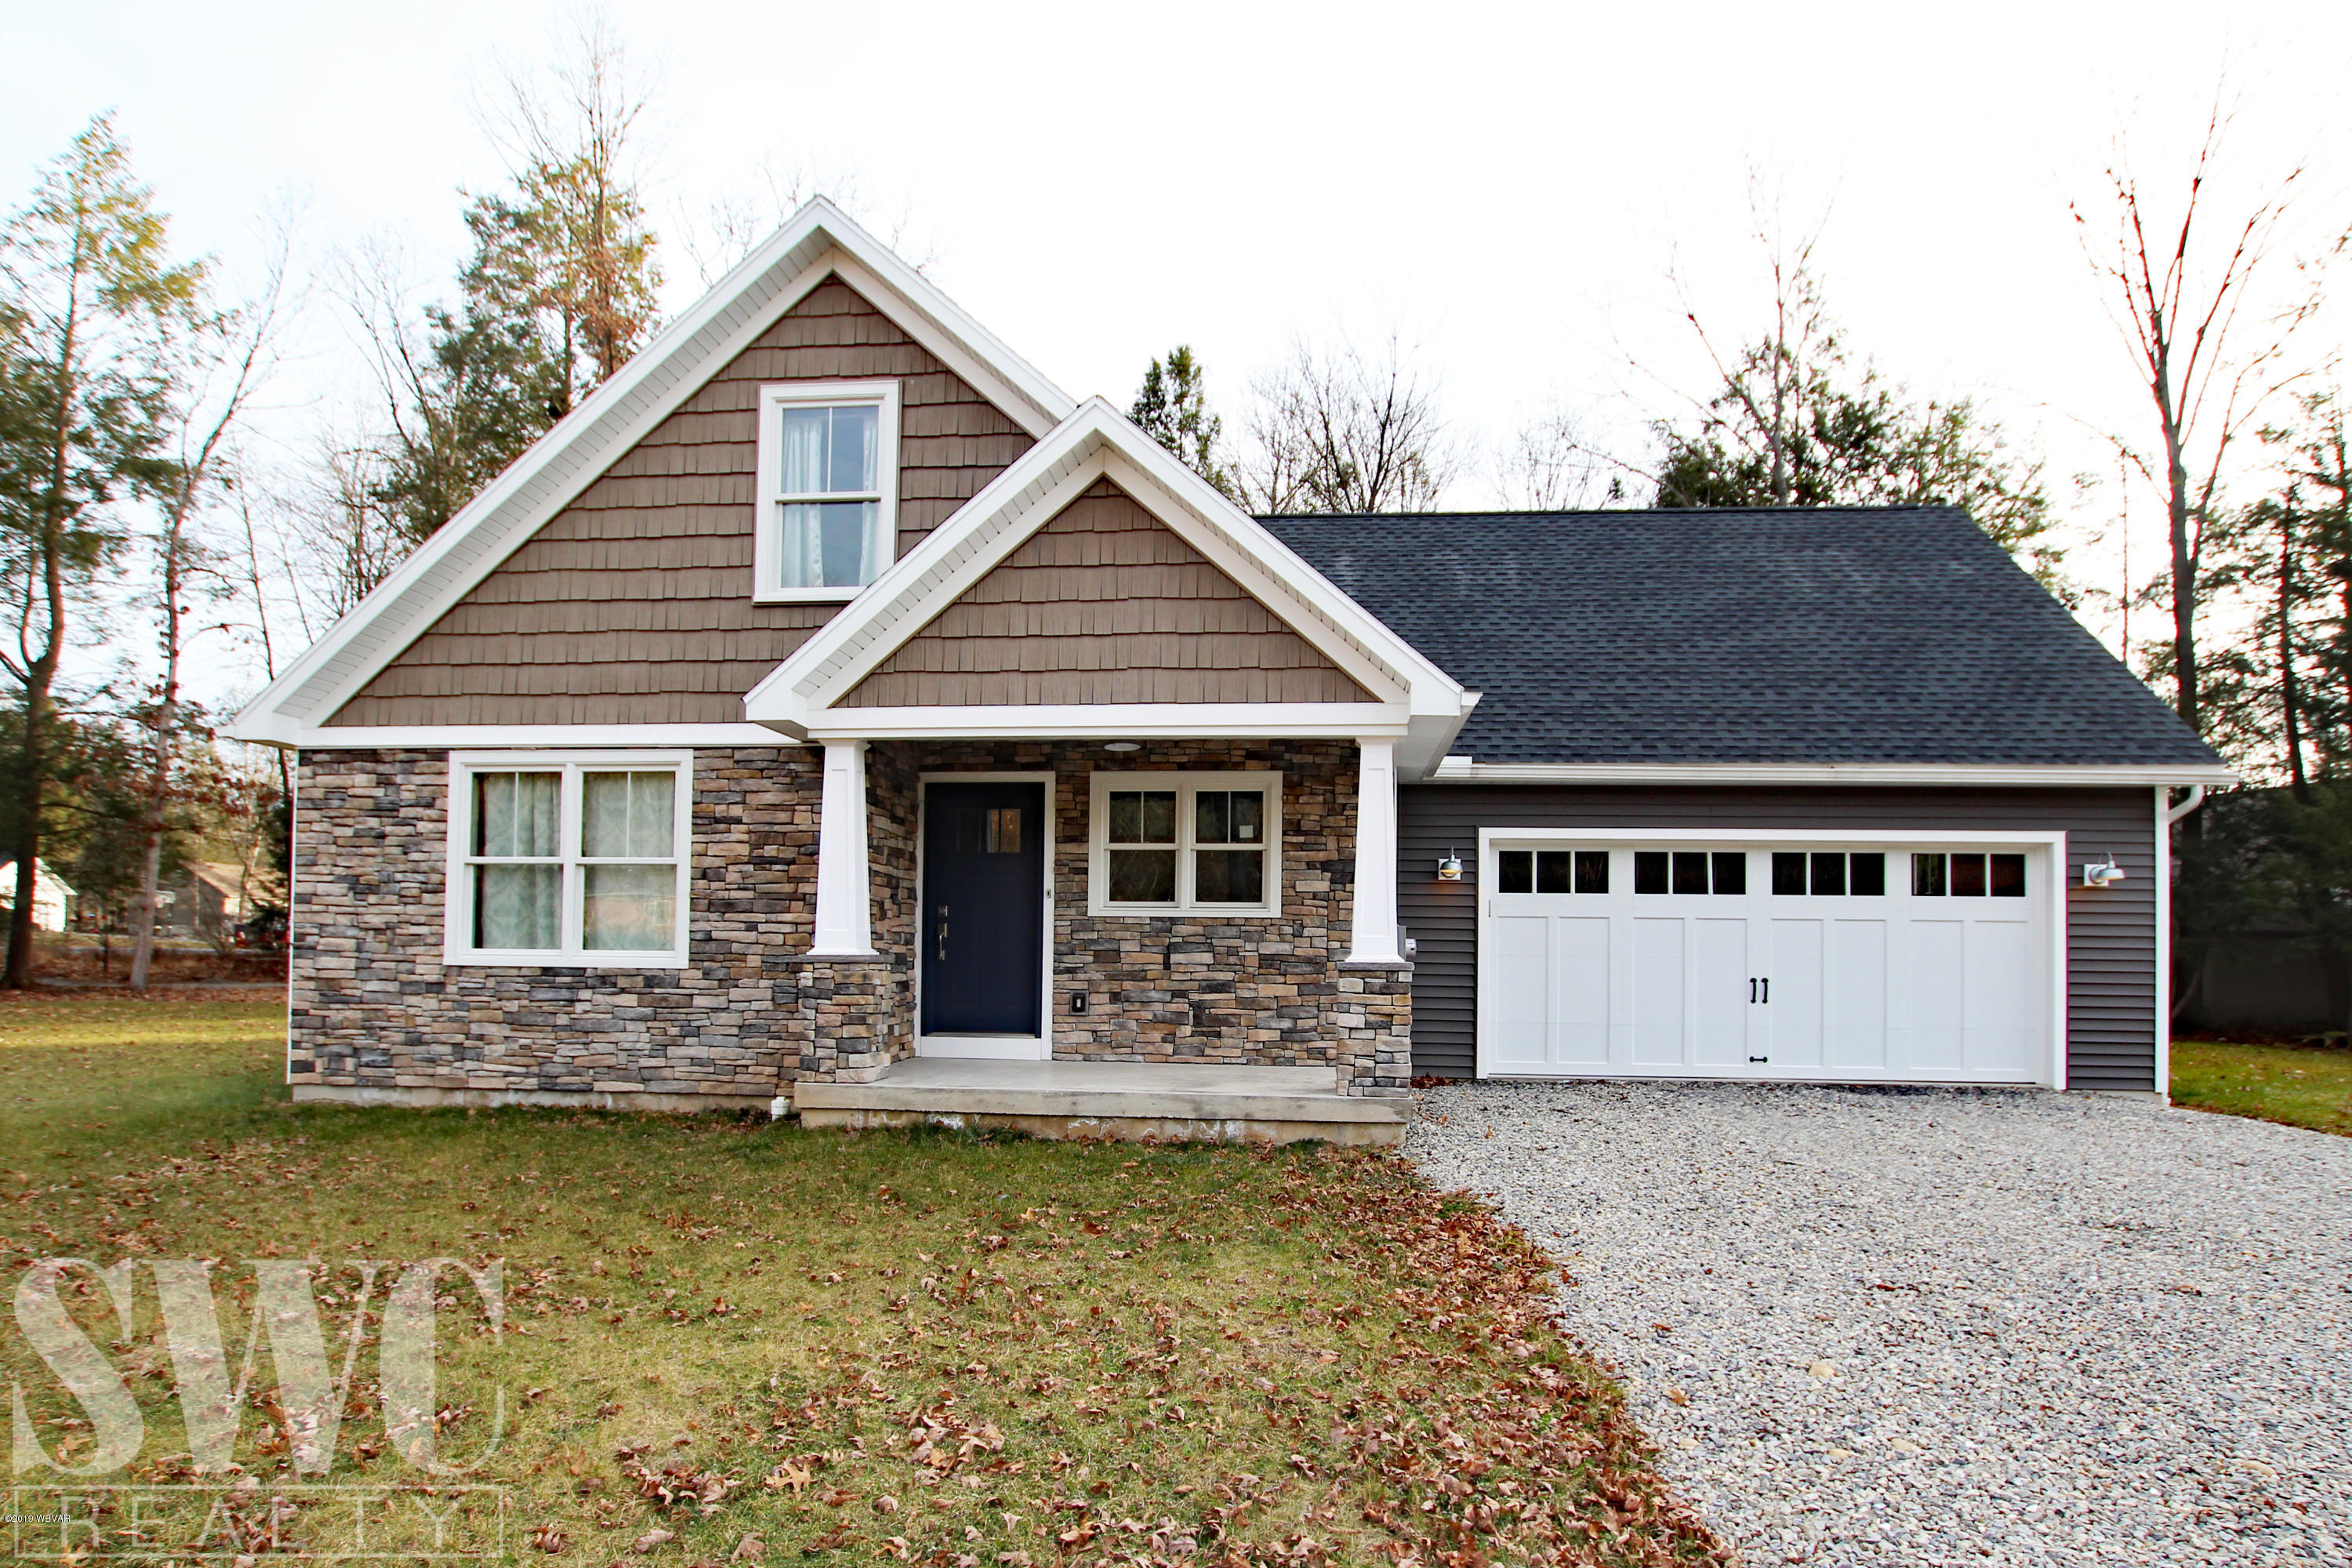 127 WOODSIDE CIRCLE,Jersey Shore,PA 17740,3 Bedrooms Bedrooms,3 BathroomsBathrooms,Residential,WOODSIDE,WB-86205